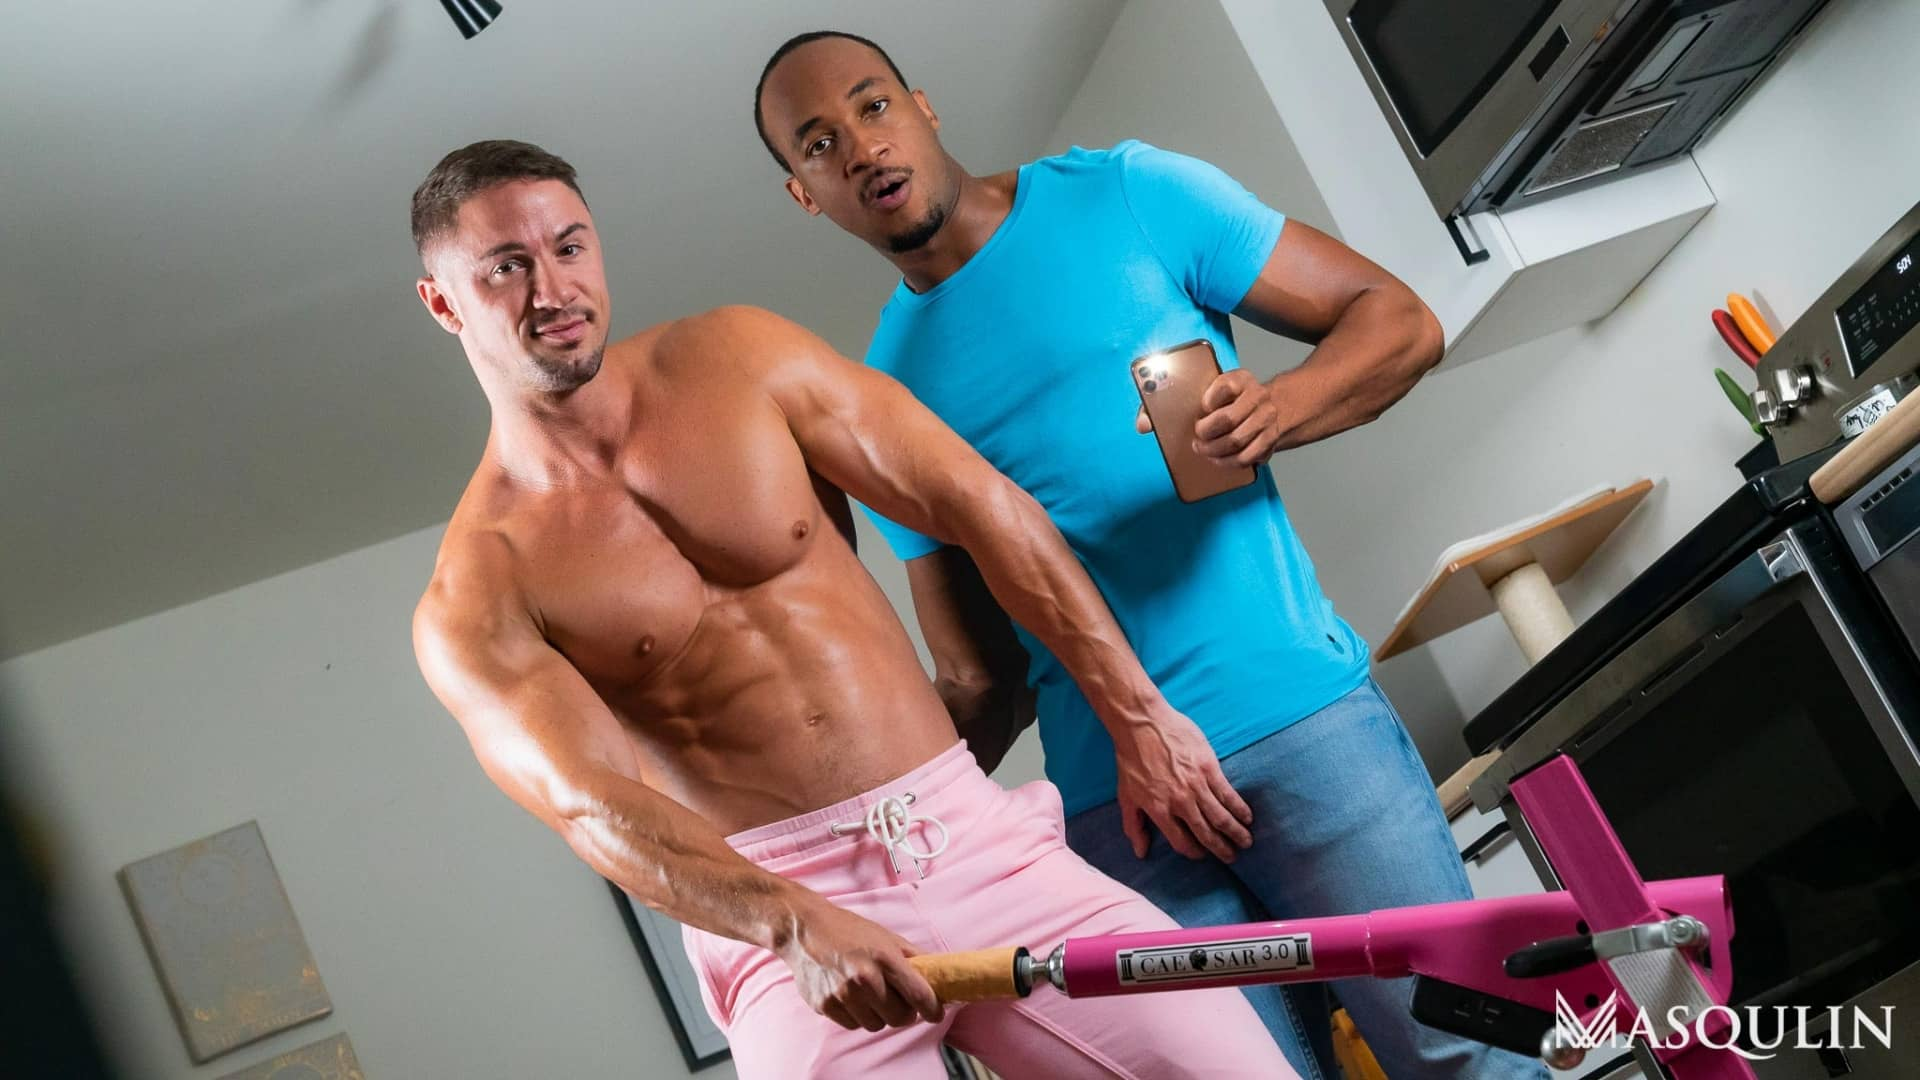 The Electrician – Skyy Knox and Trent King